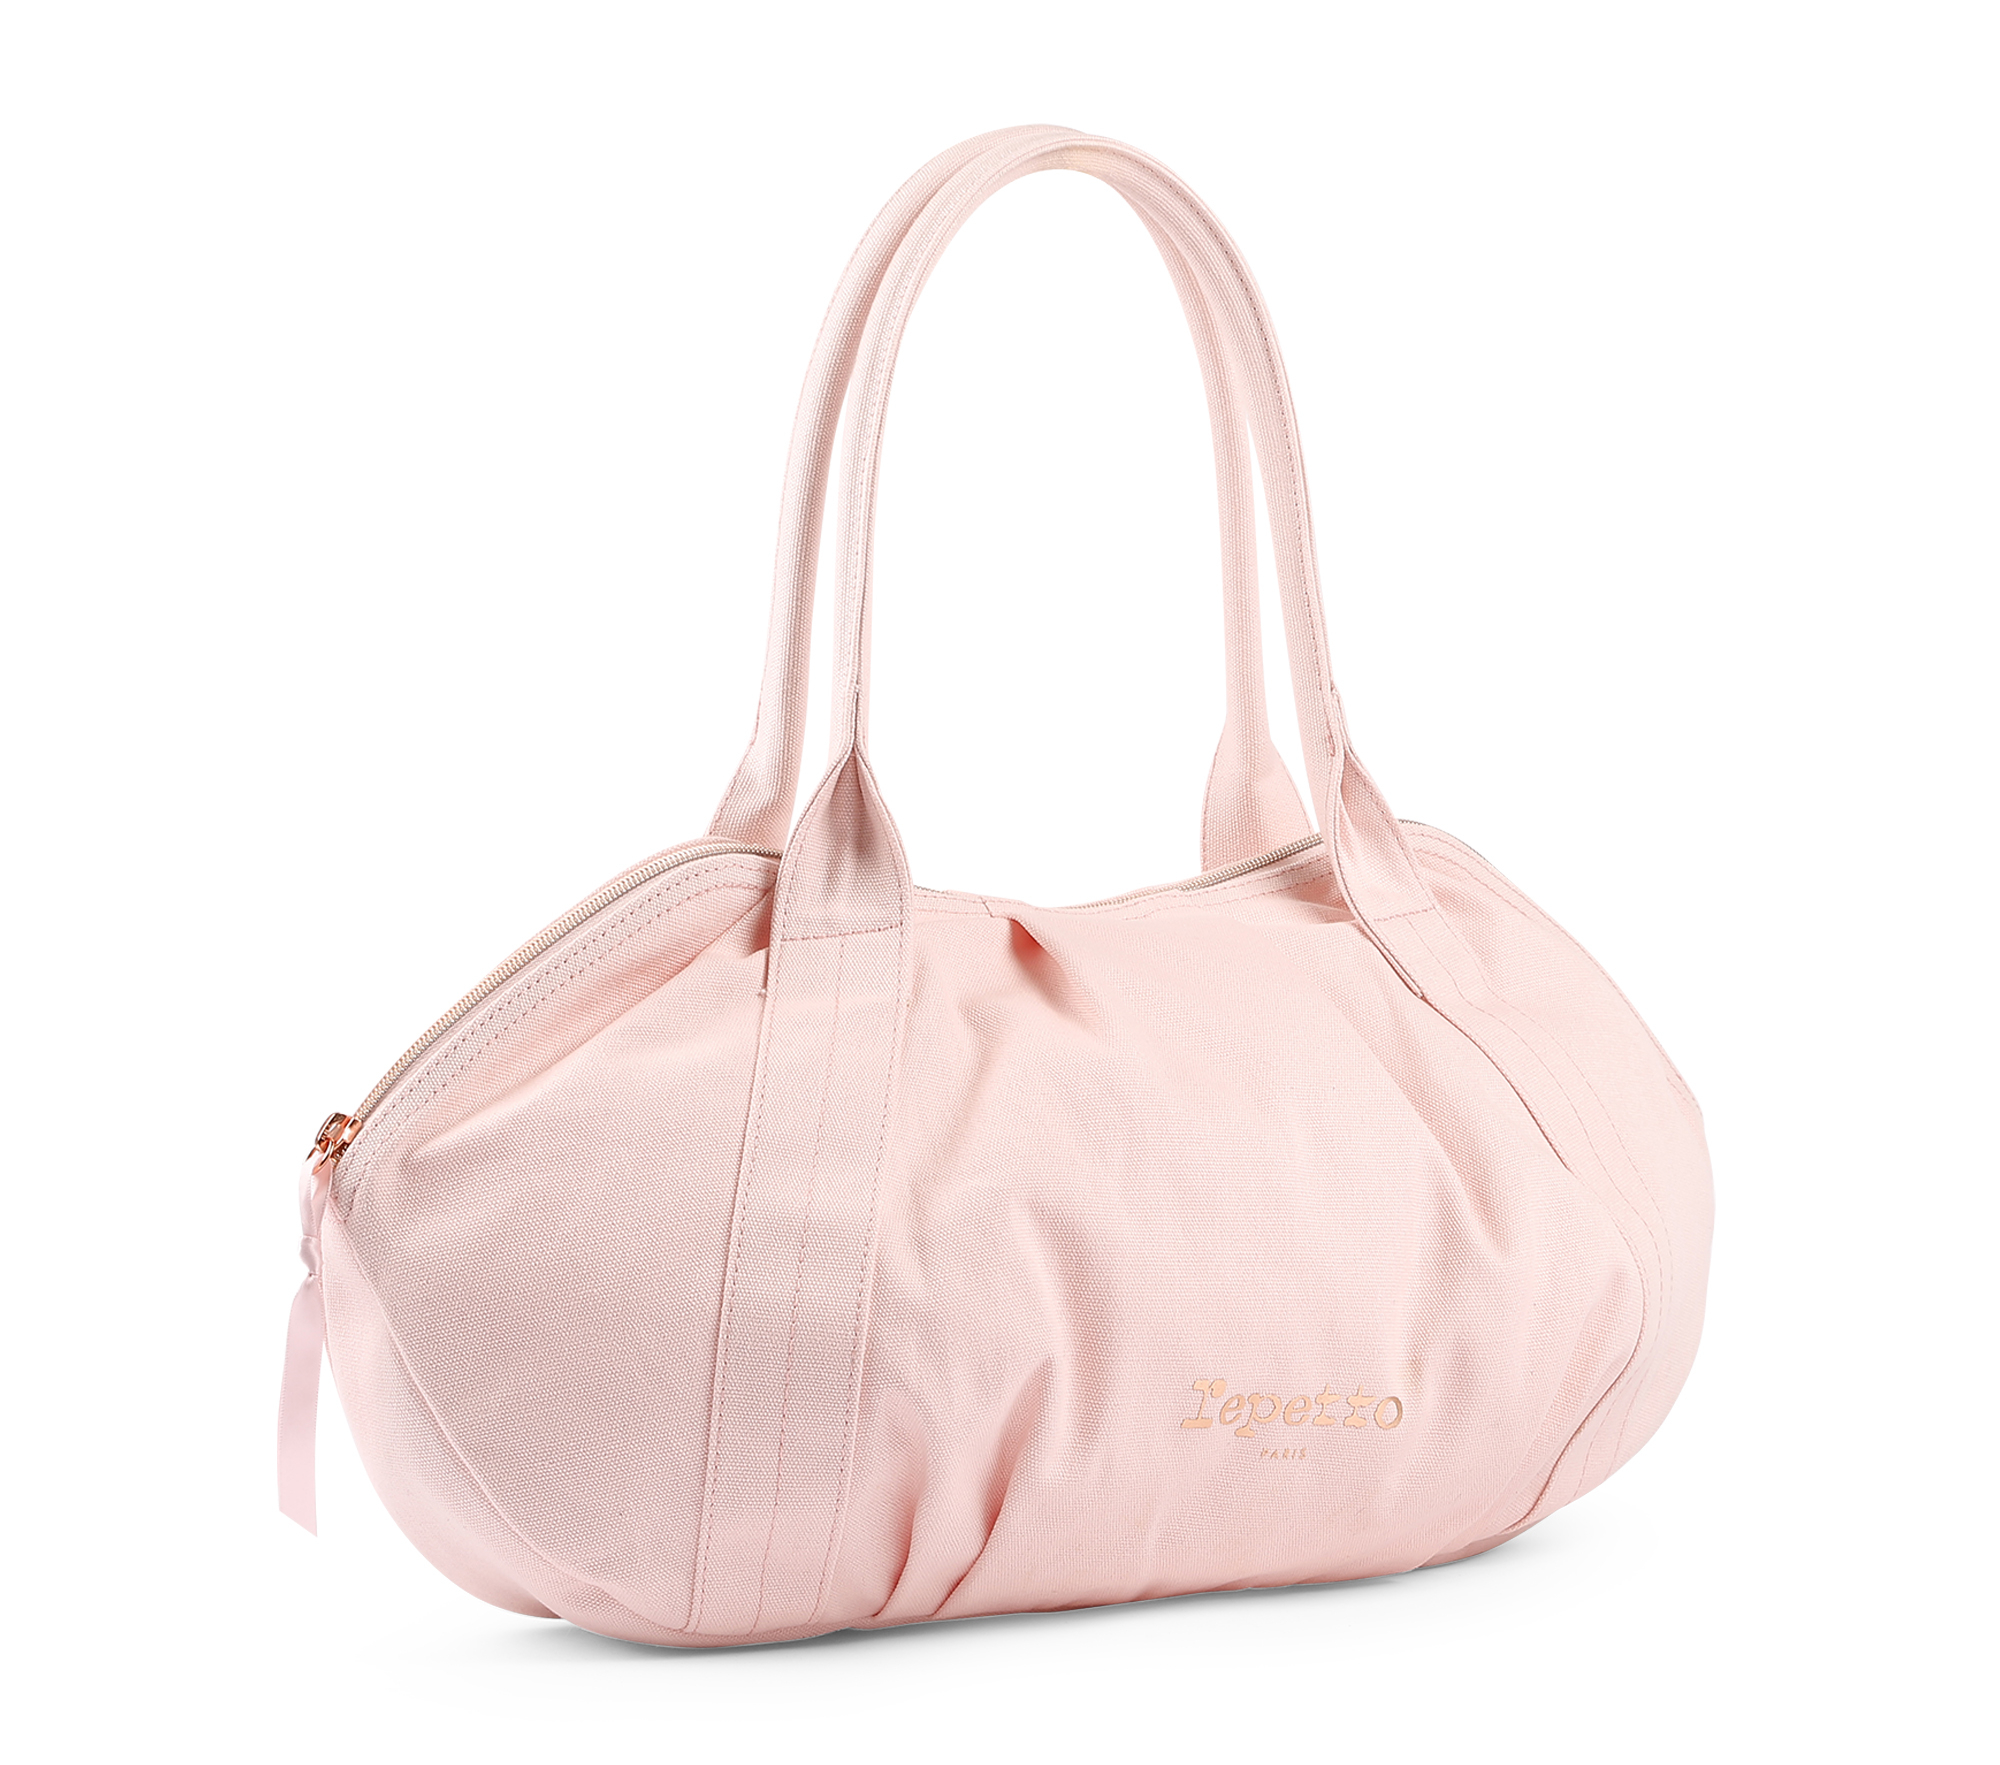 Mélodie Girls handbag